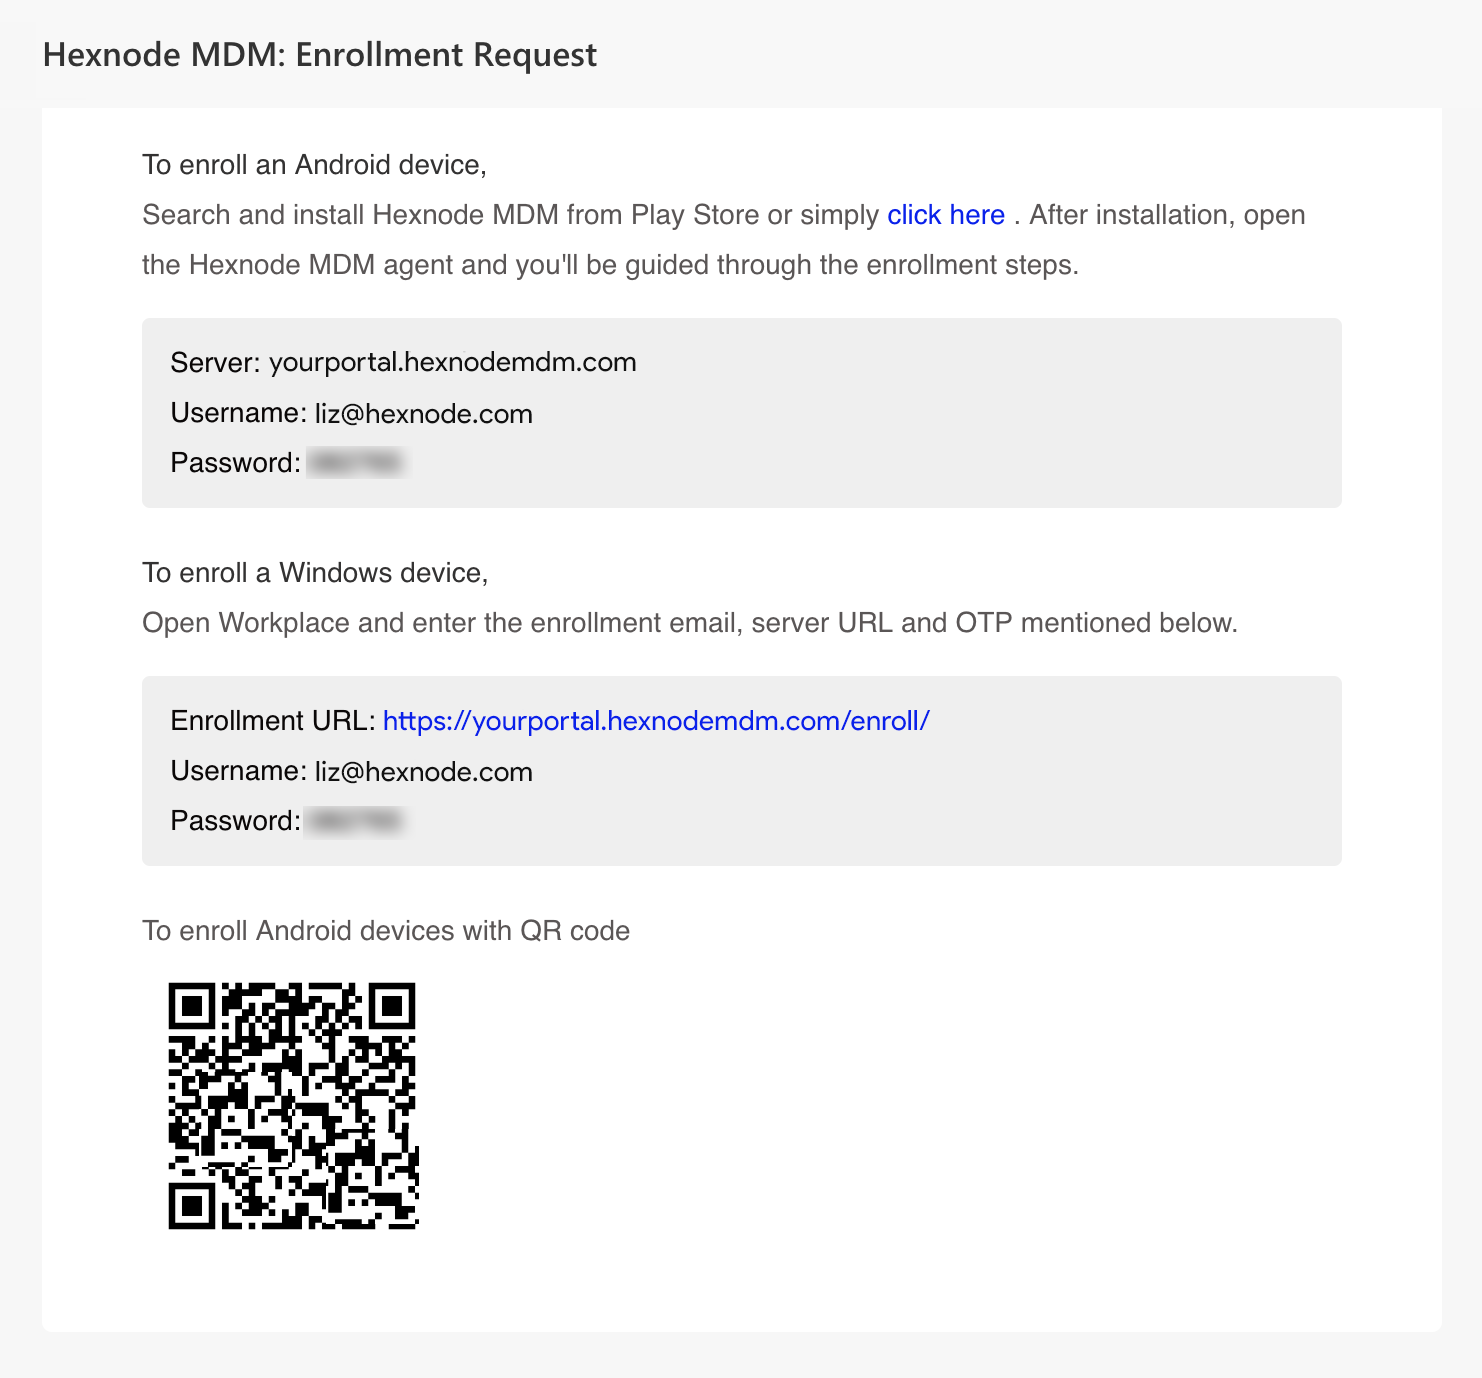 How to enroll Android mobile devices in Hexnode MDM - Help